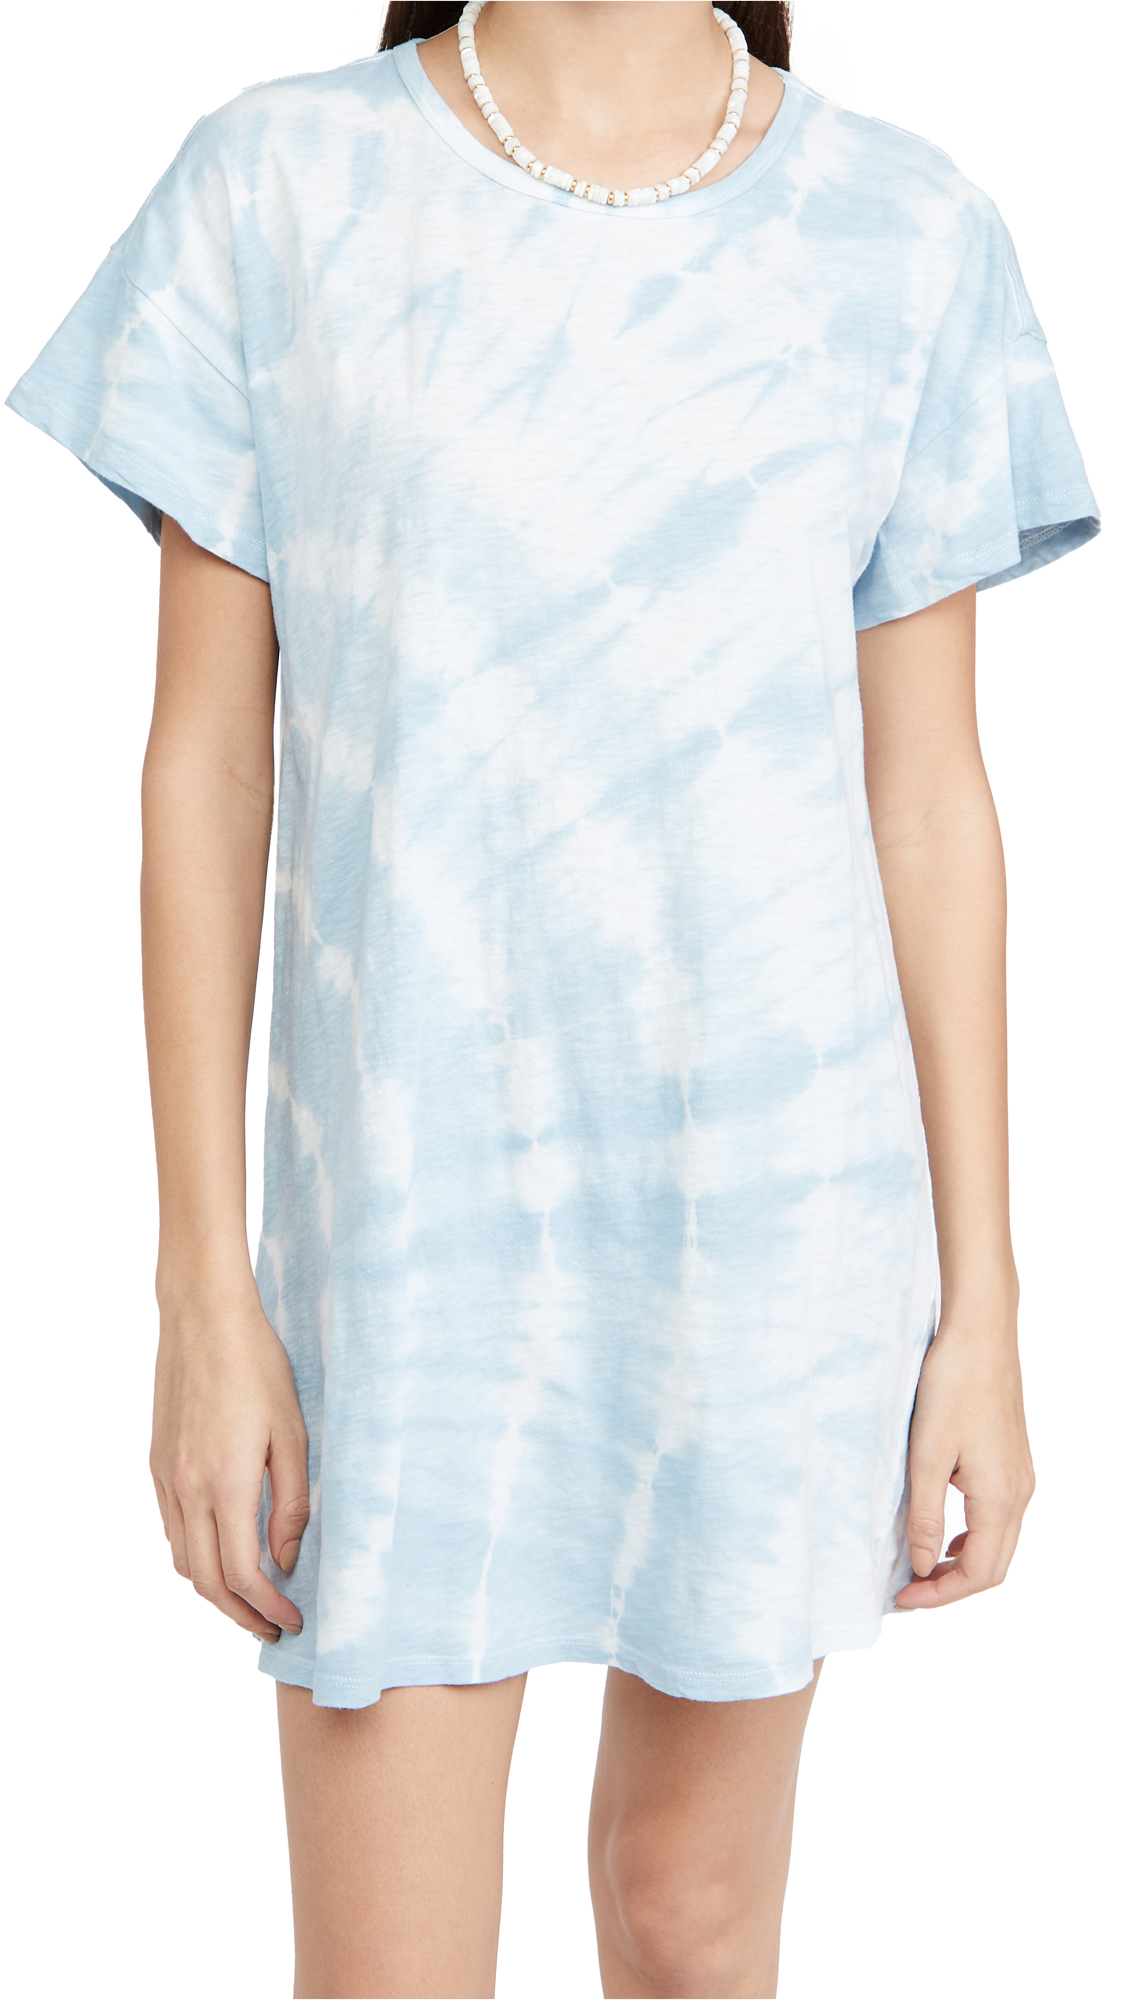 Z Supply Launa Swirl Tie Dye Dress